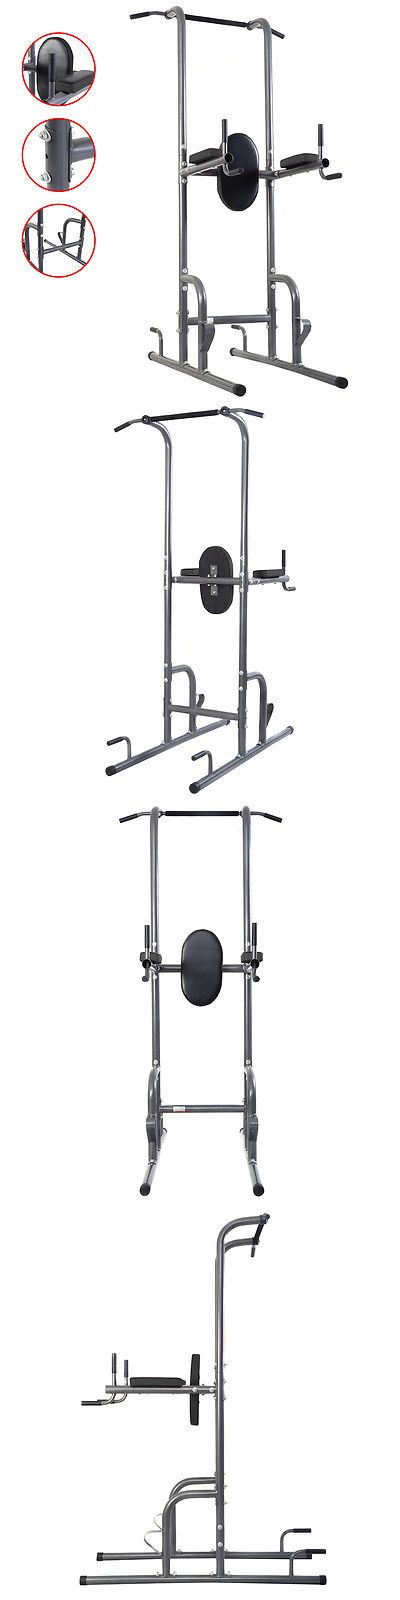 Pull Up Bars 179816: Dip Station Chin Up Tower Rack Pull Up Weight Stand Bar Raise Workout Home Gym BUY IT NOW ONLY: $105.99